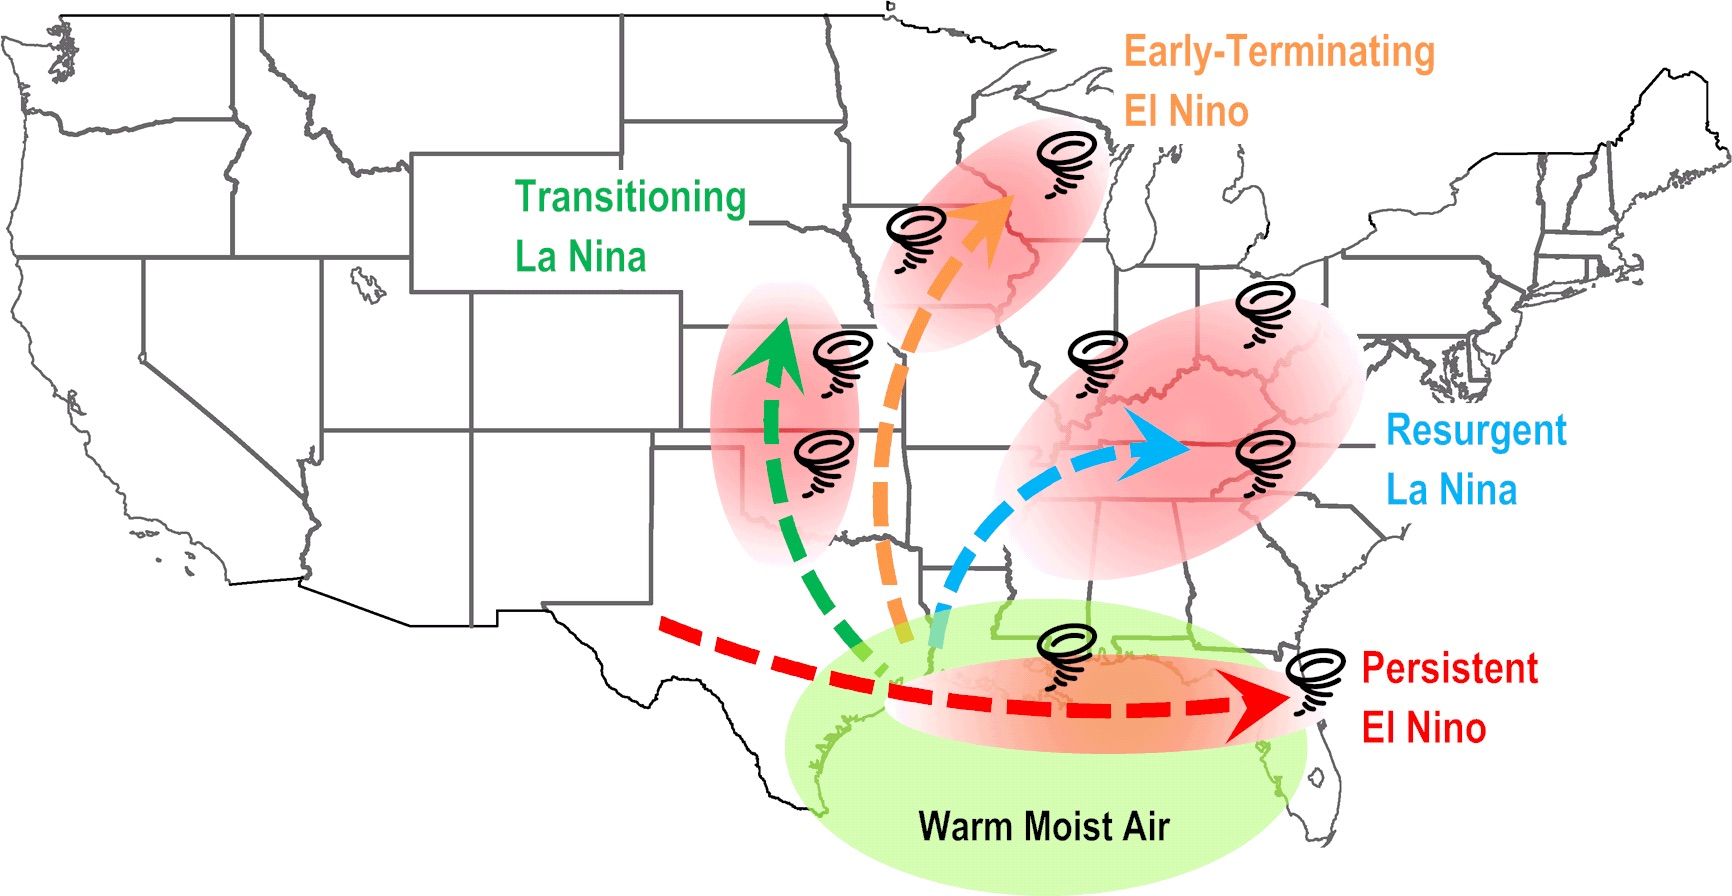 The Results Suggest That Each Of The Four Dominant Spring Enso Flavors Is Linked To Distinct And Significant U S Regional Patterns Of Outbreak Probability